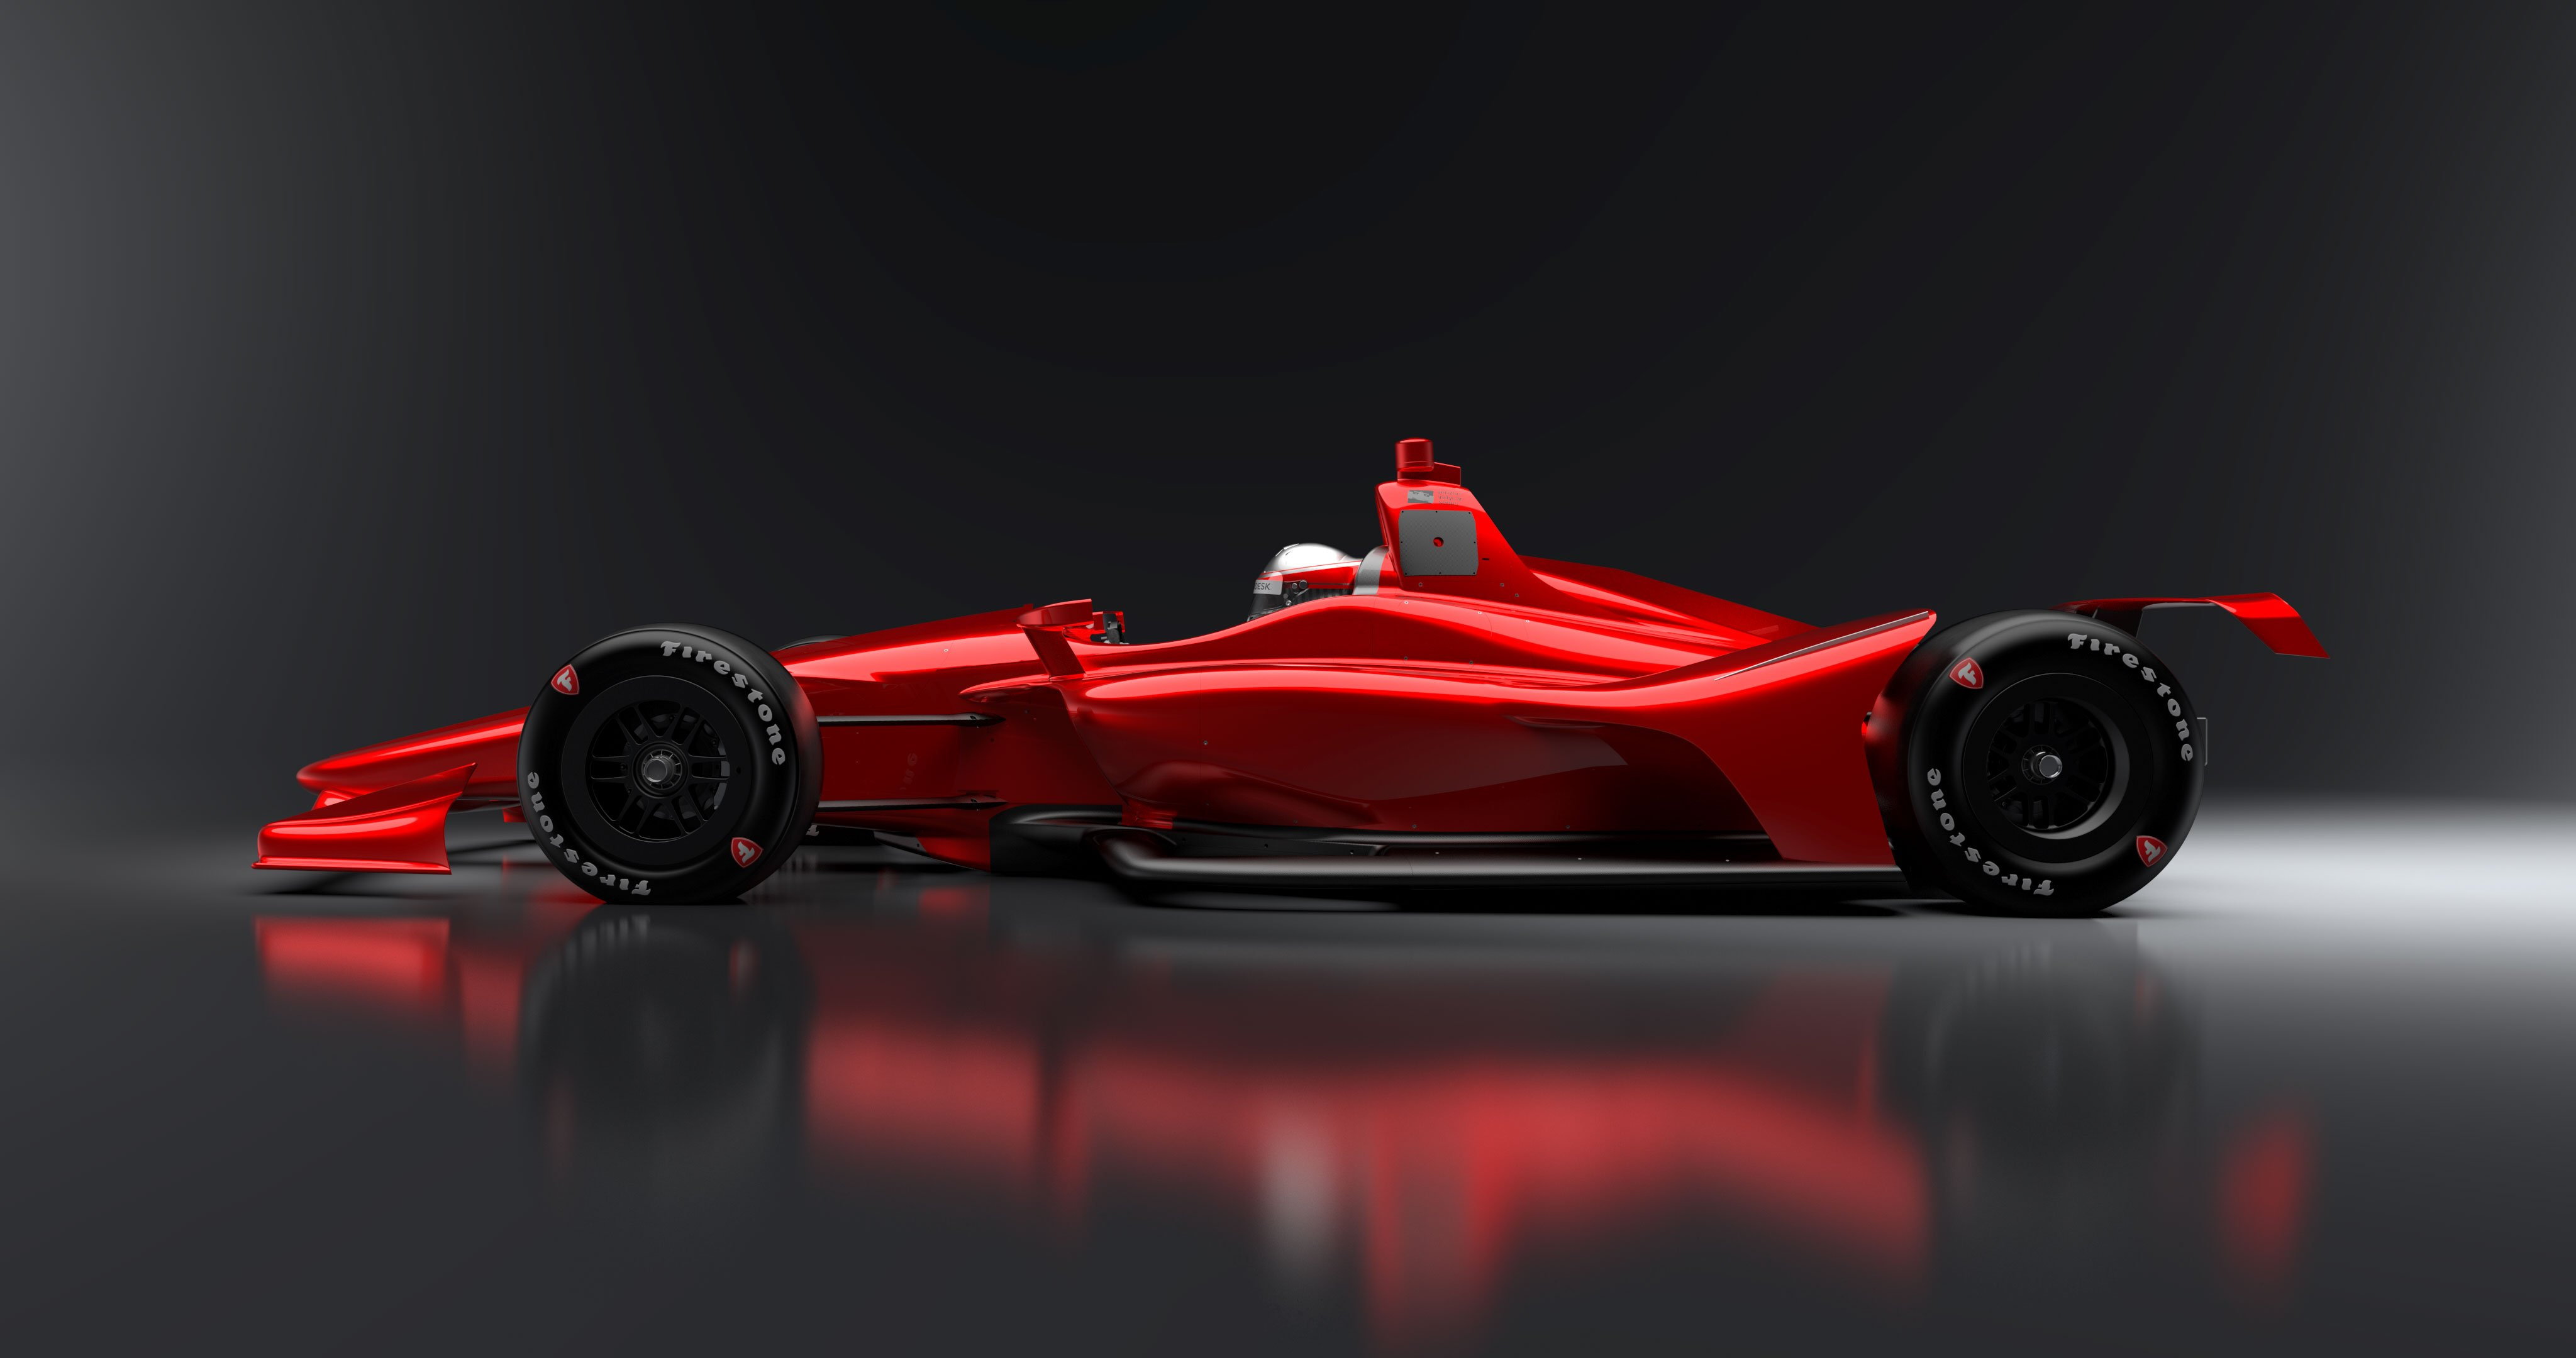 New Images of 2018 Indycar - NEXT Indycar - Racing News